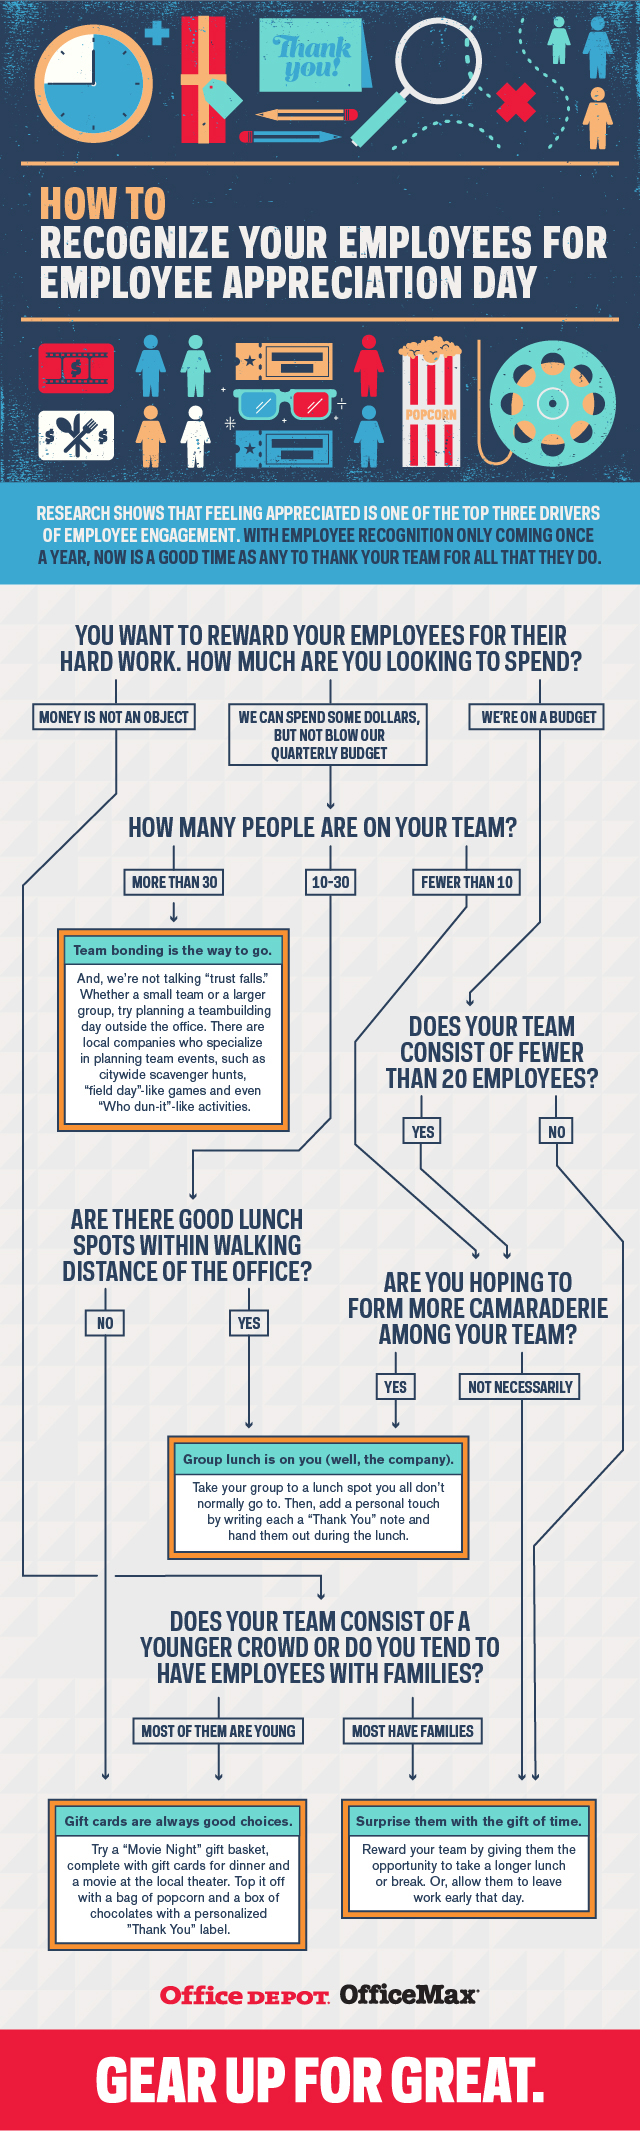 How to Recognize Your Employees for Employee Appreciation Day Infographic